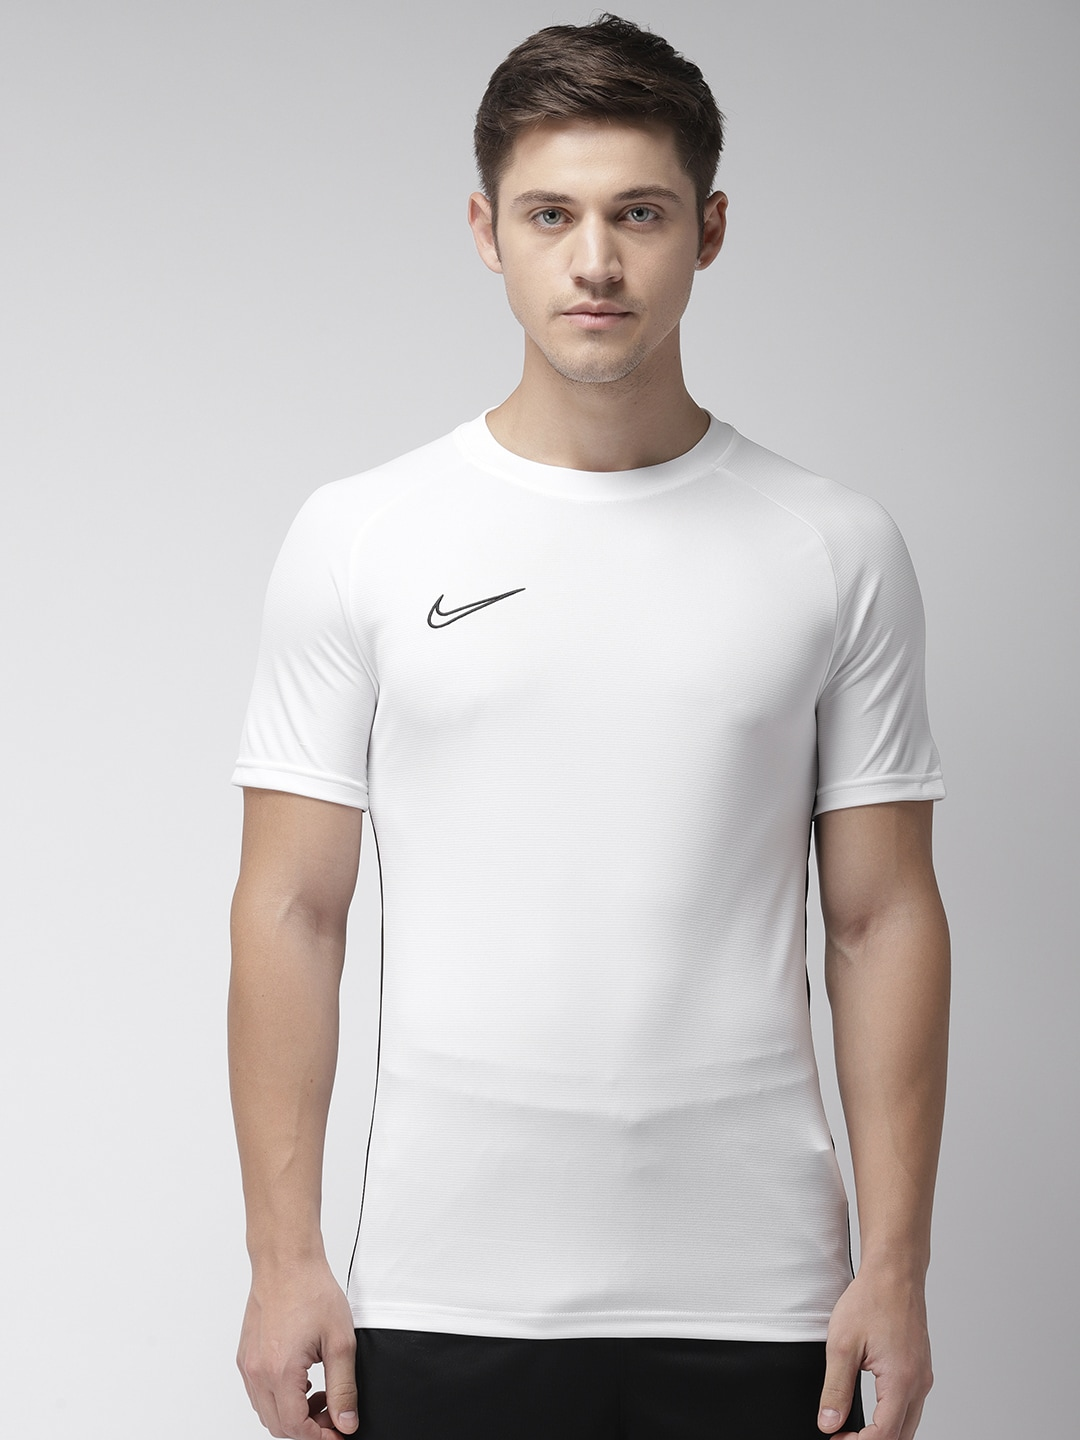 Men's Clothing Search For Flights 2018 Nike Academy 18 Mens Short Sleeve Football Training T-shirt Top Navy Royal Handsome Appearance Activewear Tops